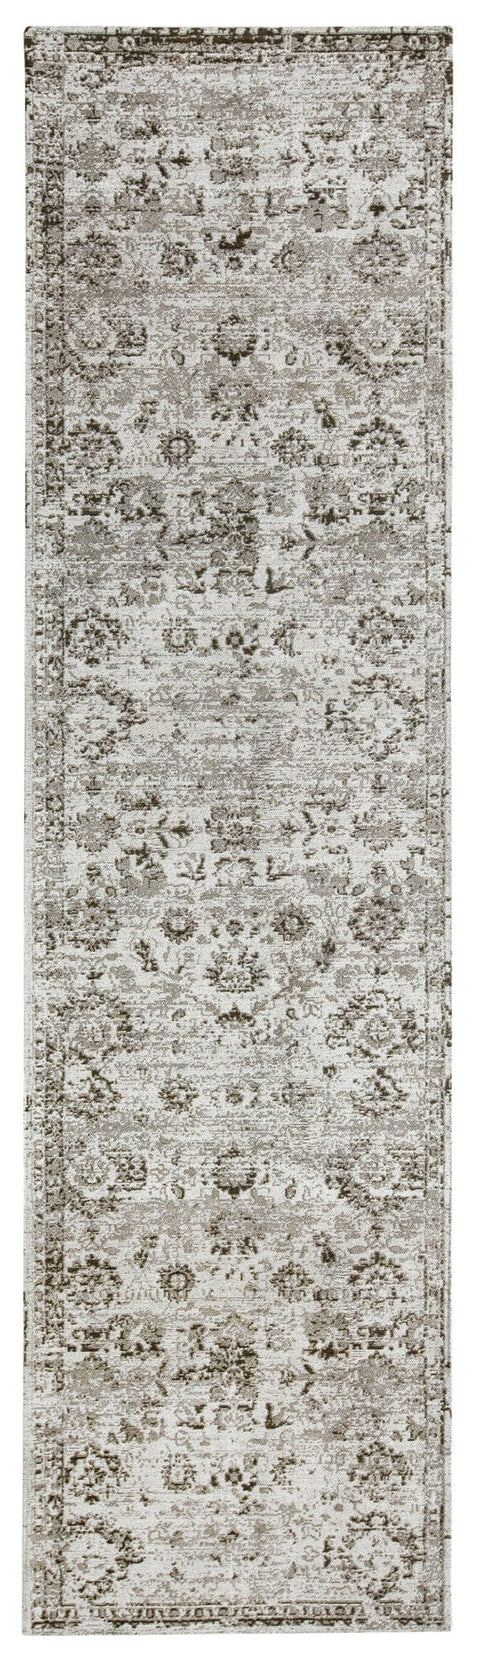 Nousha Black and White Transitional Runner Rug